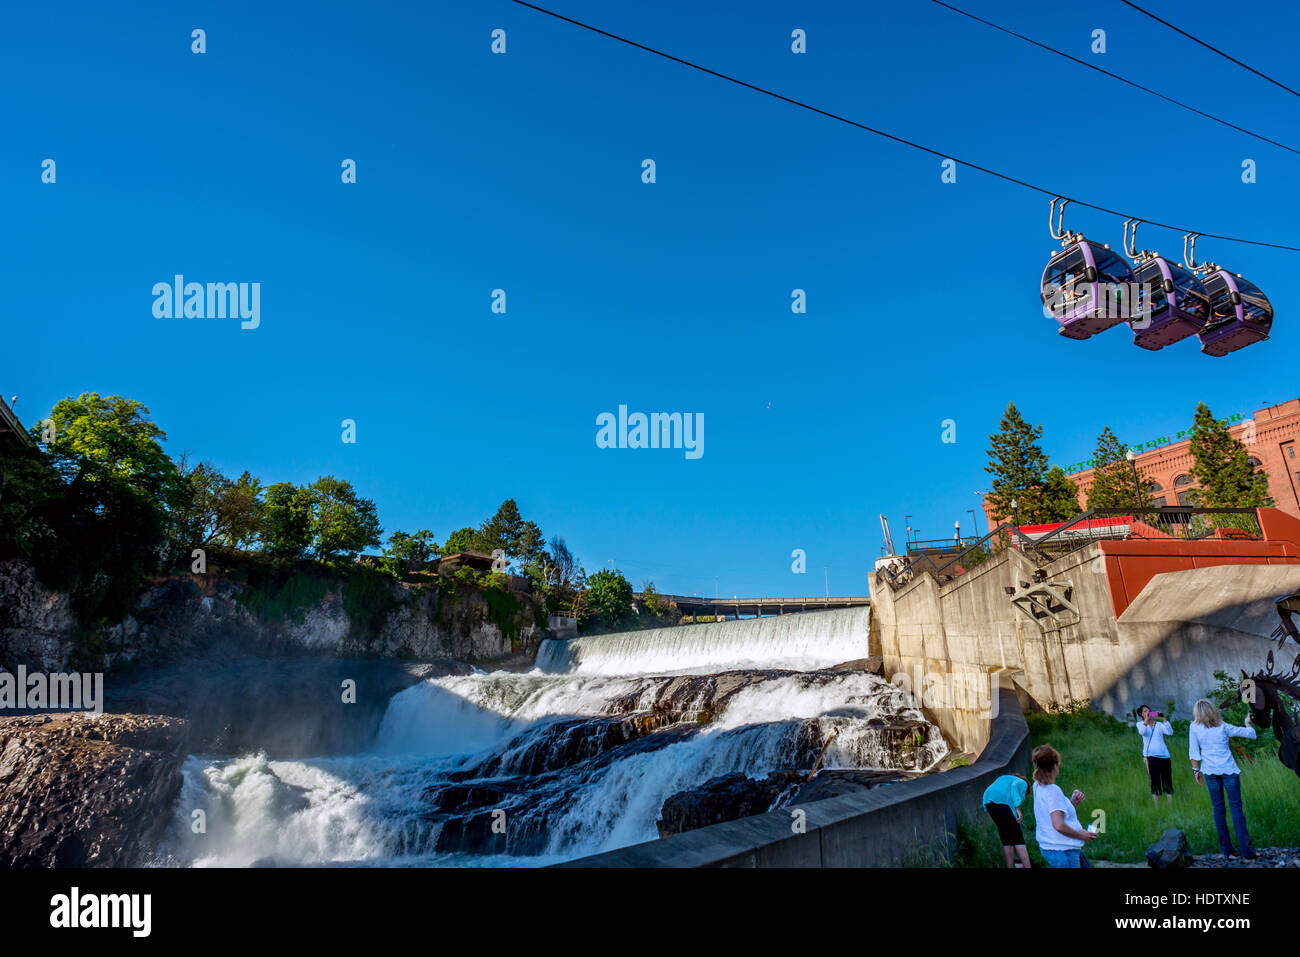 Cable cars on the Riverfront Park development in downtown Spokane on the Spokane Falls SkyRide Stock Photo